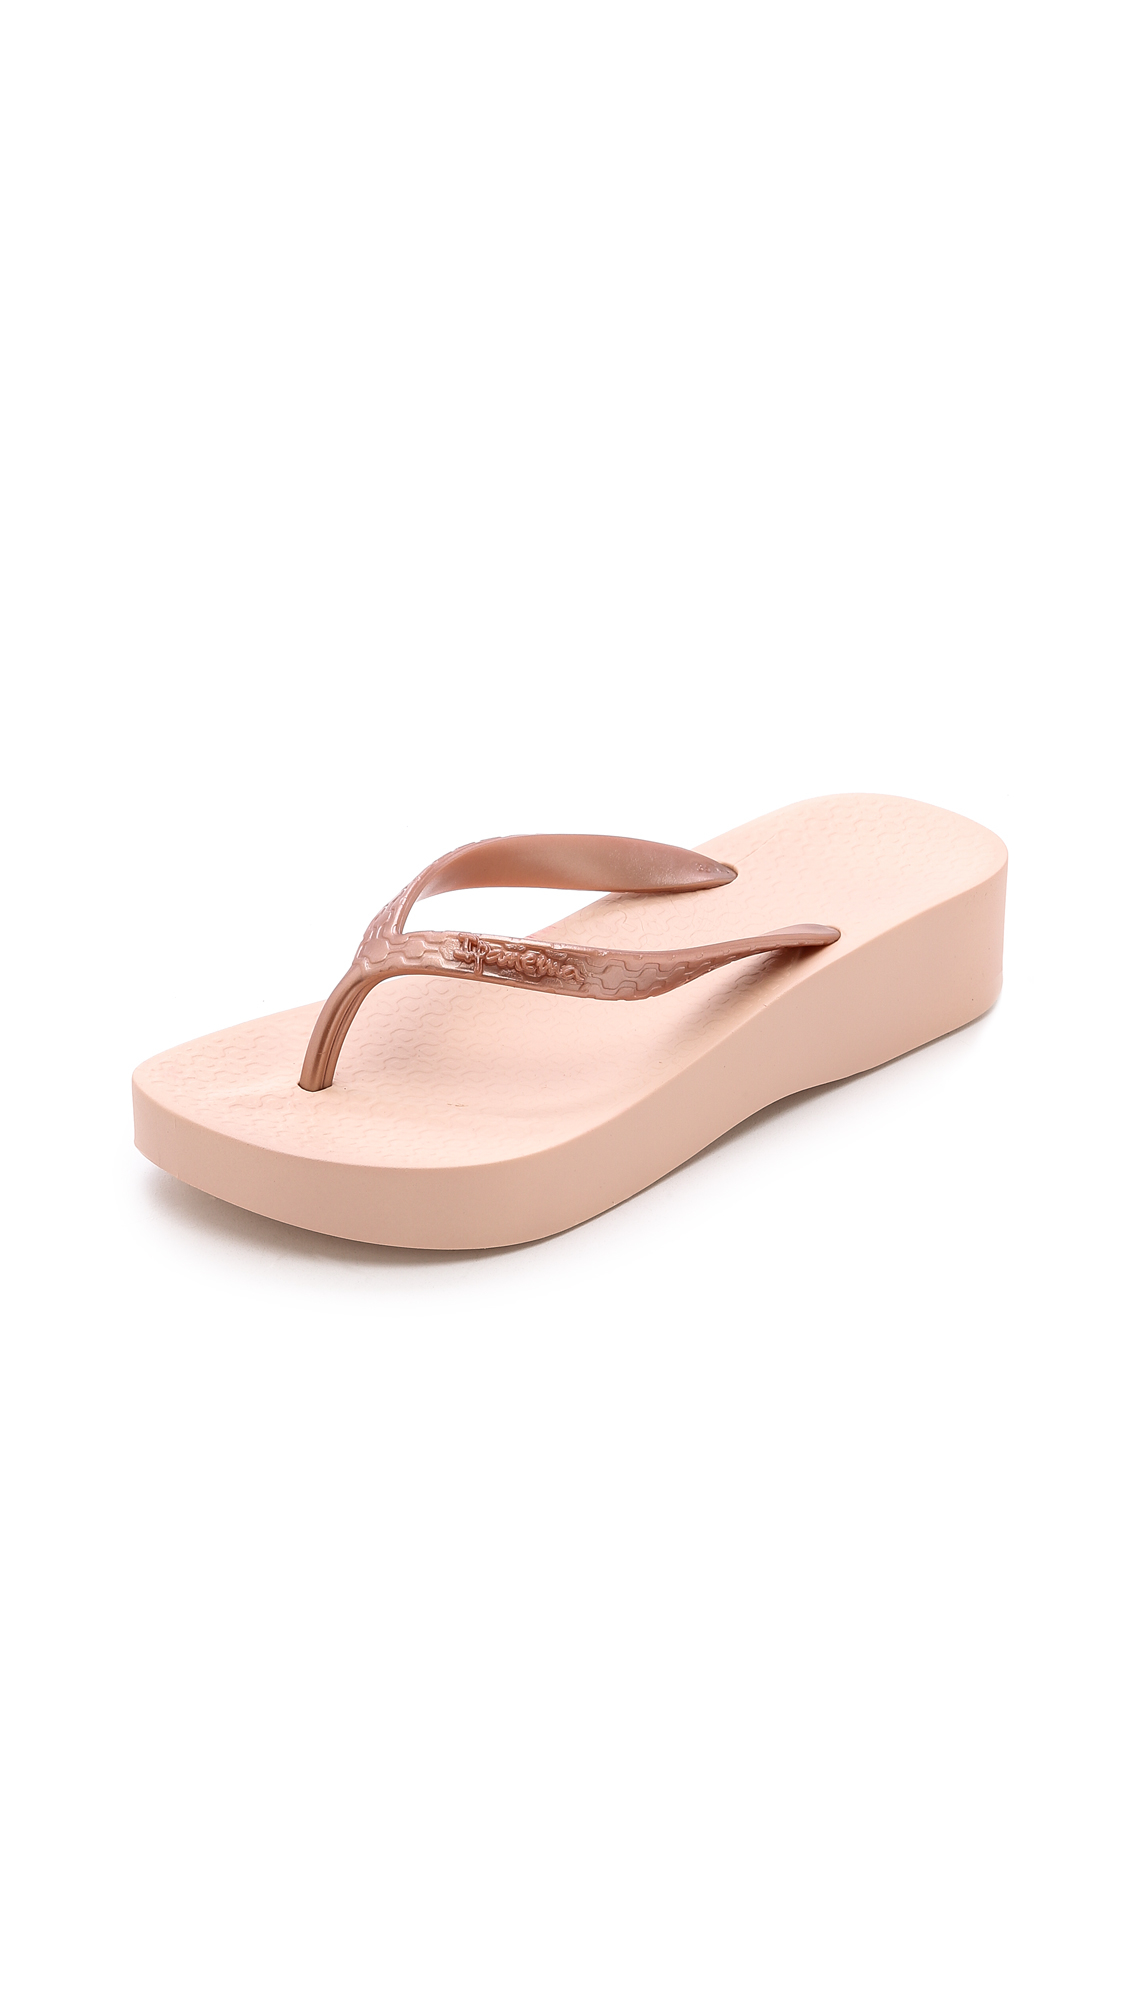 6076b124d79 Lyst - Ipanema Tropical Wedge Flip Flops - Rose Gold in Pink